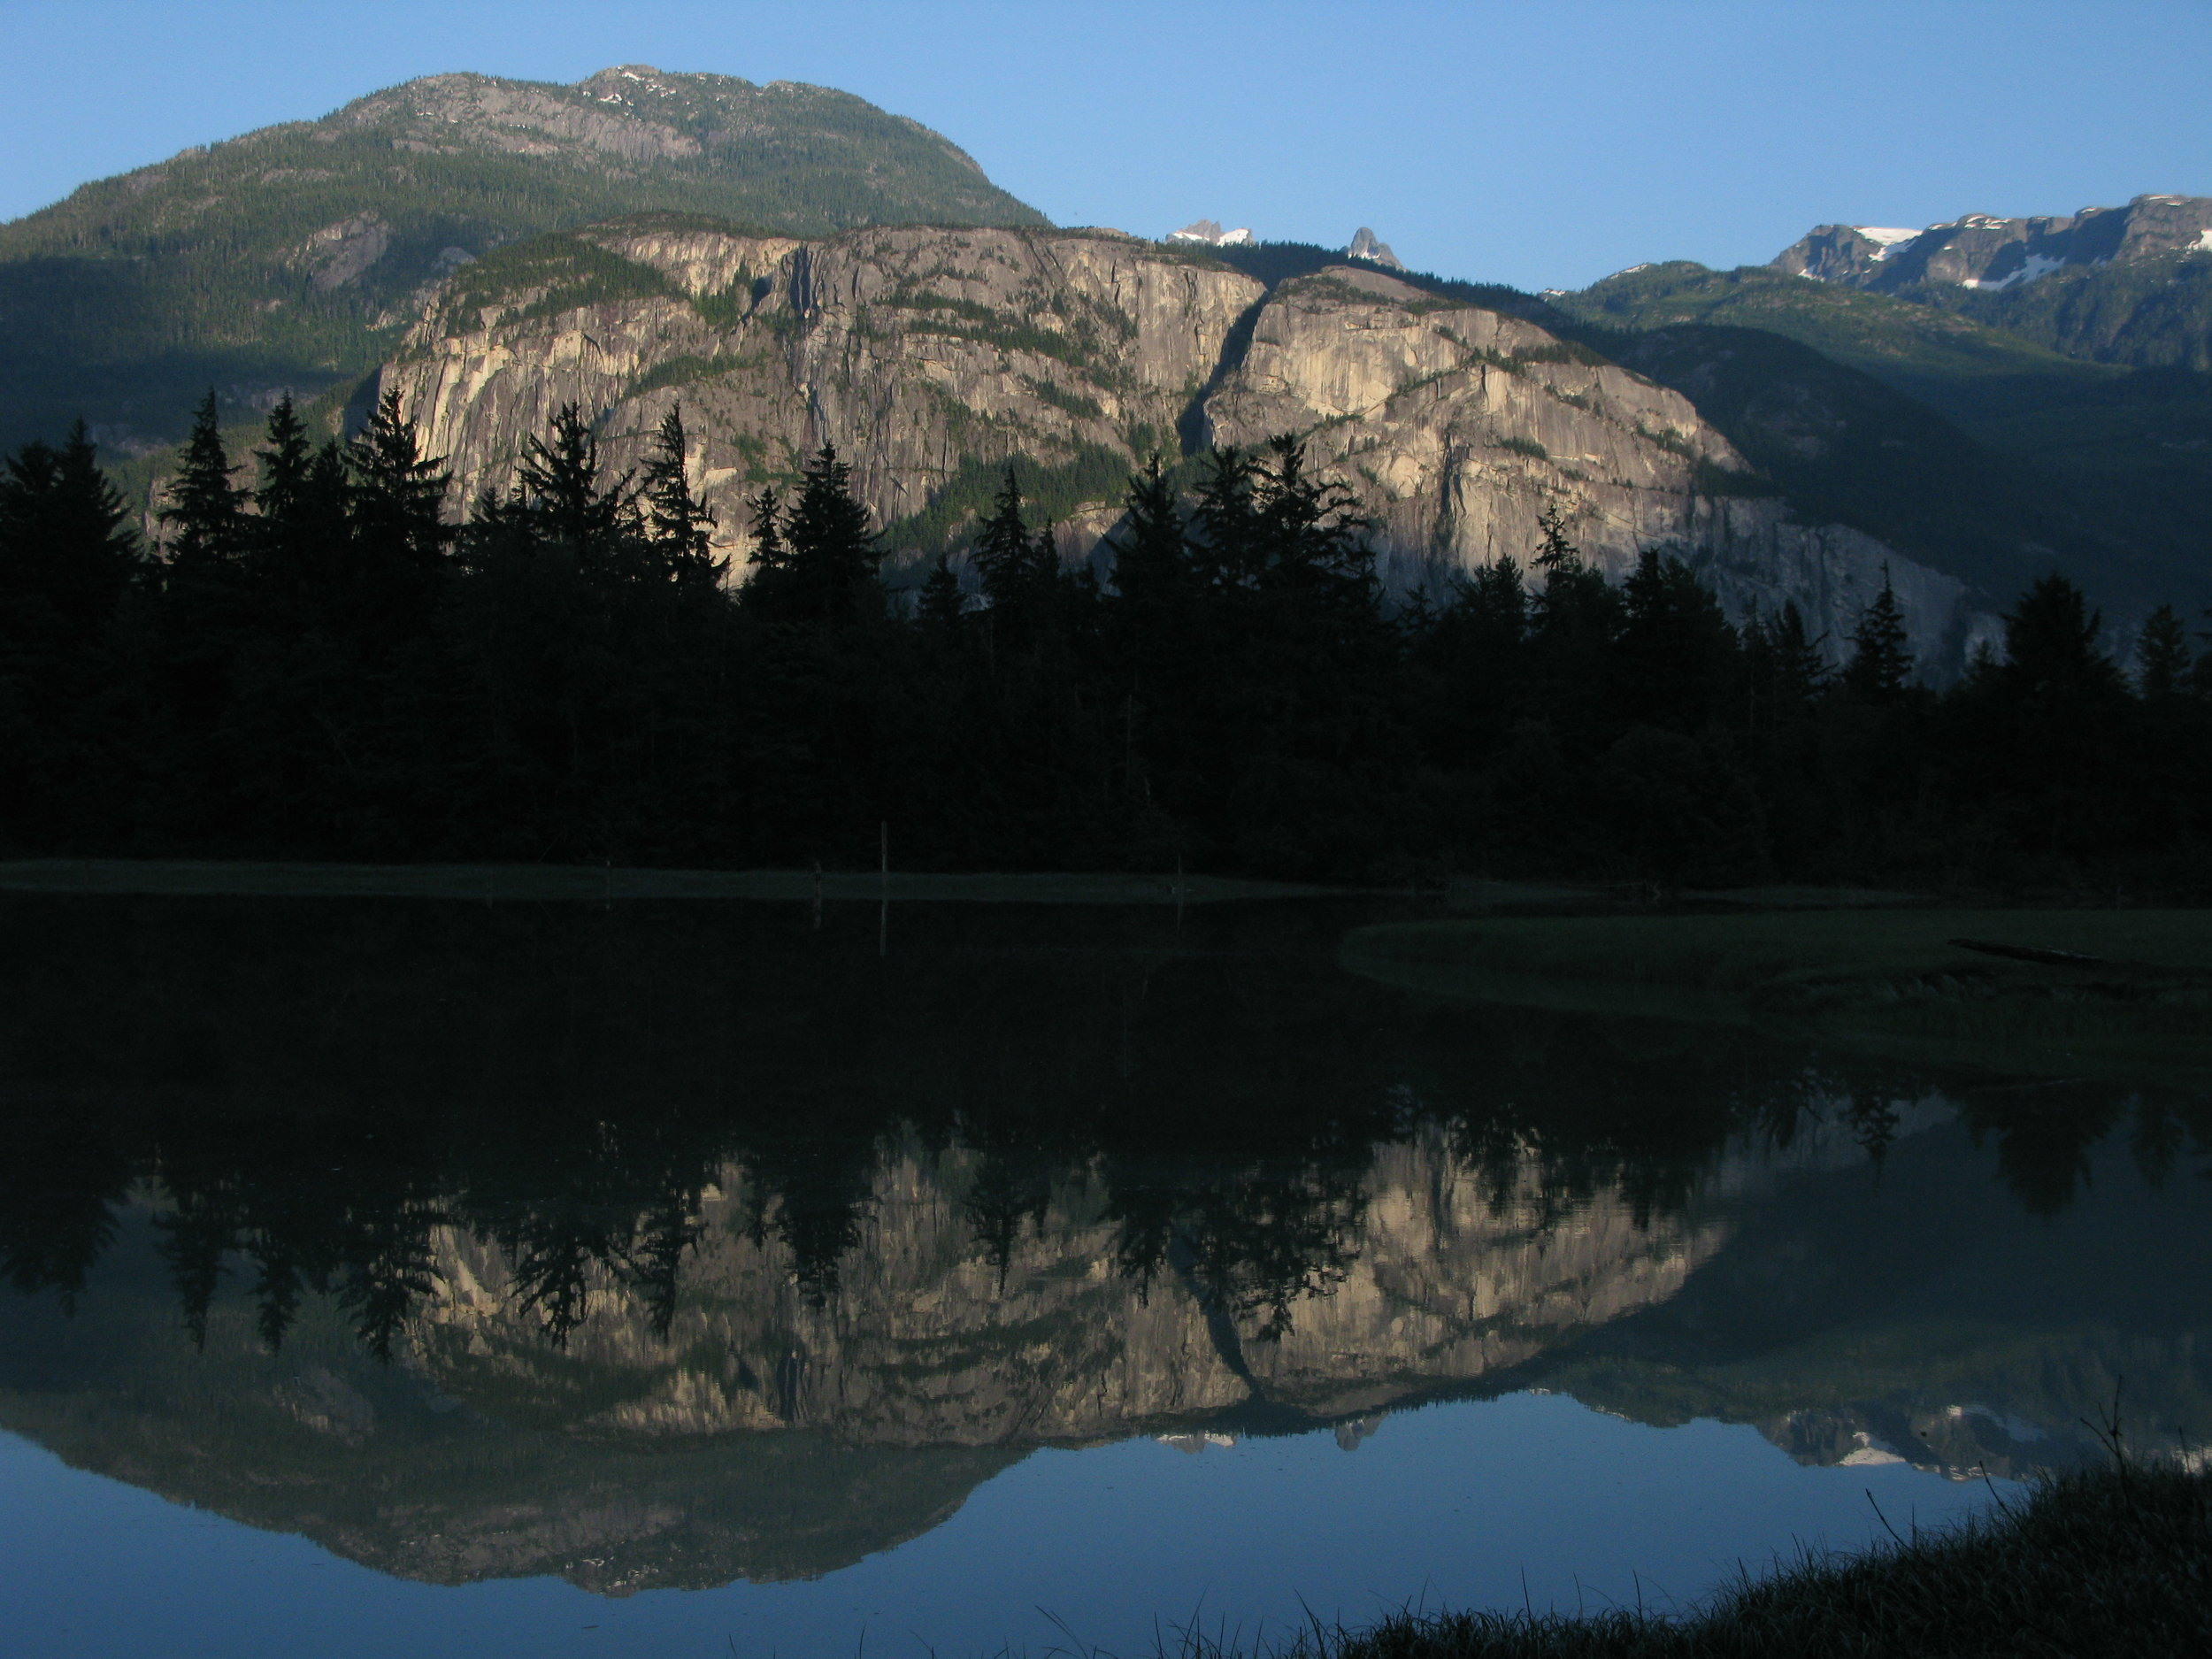 The Stawamus Chief from the Squamish Estuary